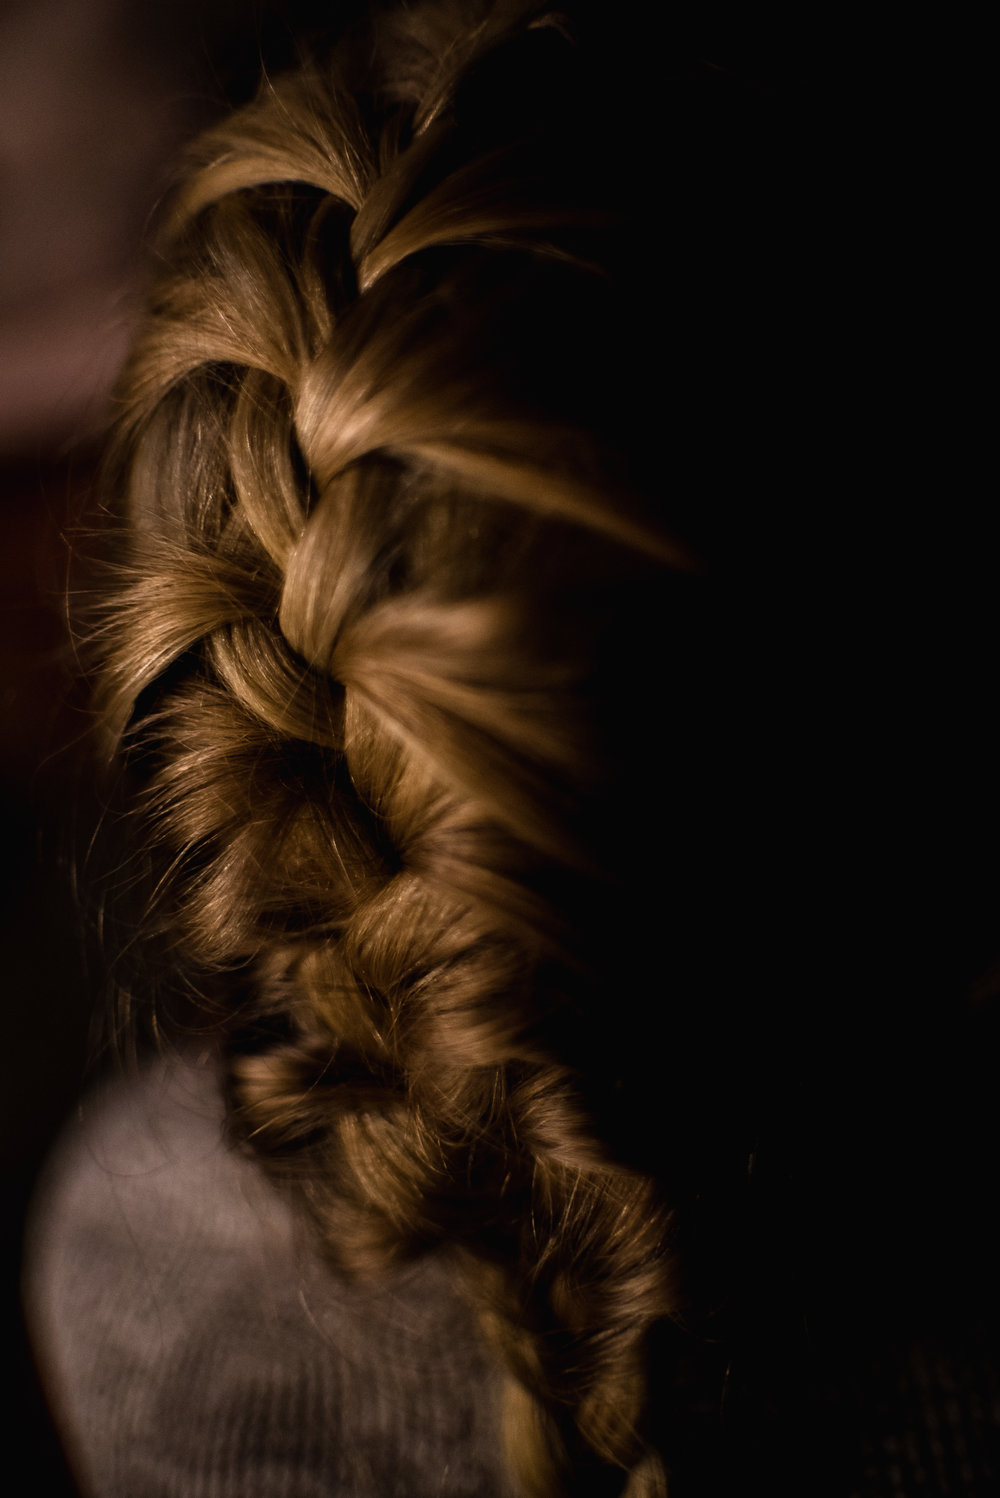 20/365 I am always up for a challenge, so when my daughter asked me to french braid her hair, I accepted. I don't have a lot of hair, it doesn't even grow to my shoulders. It is so thin that I cant even put it into a pony tail, let alone braid it in any fashion. This is the first French Braid I have ever done, and I am so highly visual, that I watched me doing it in my head while I was doing it on her. Pretty good for a first timer.